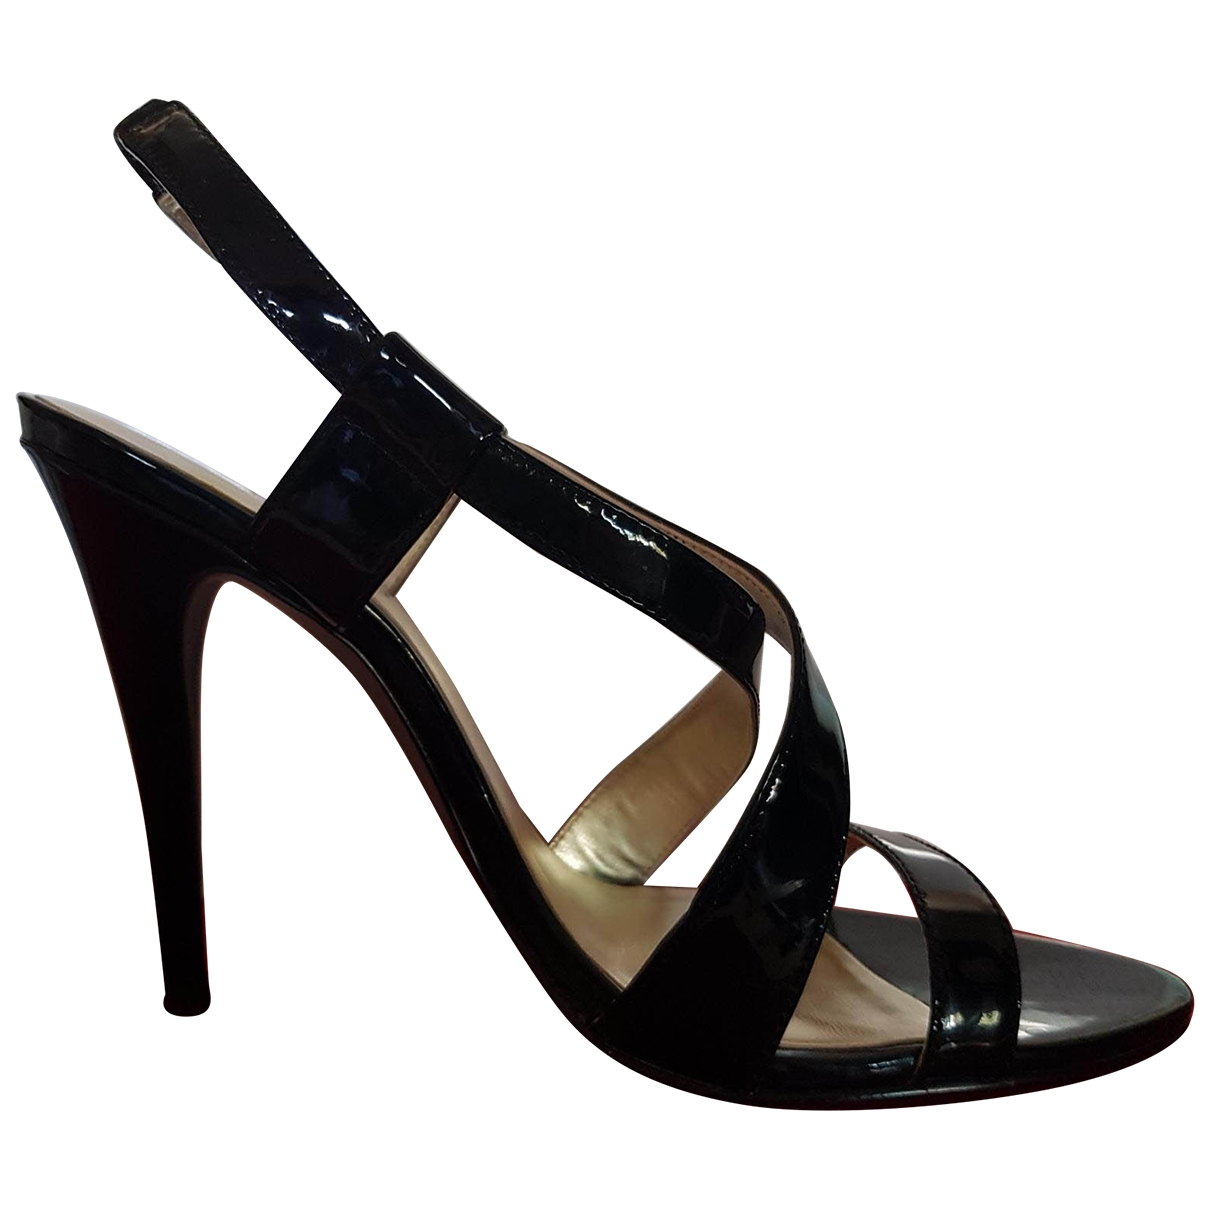 Guess \N Black Patent leather Sandals for Women 36 IT